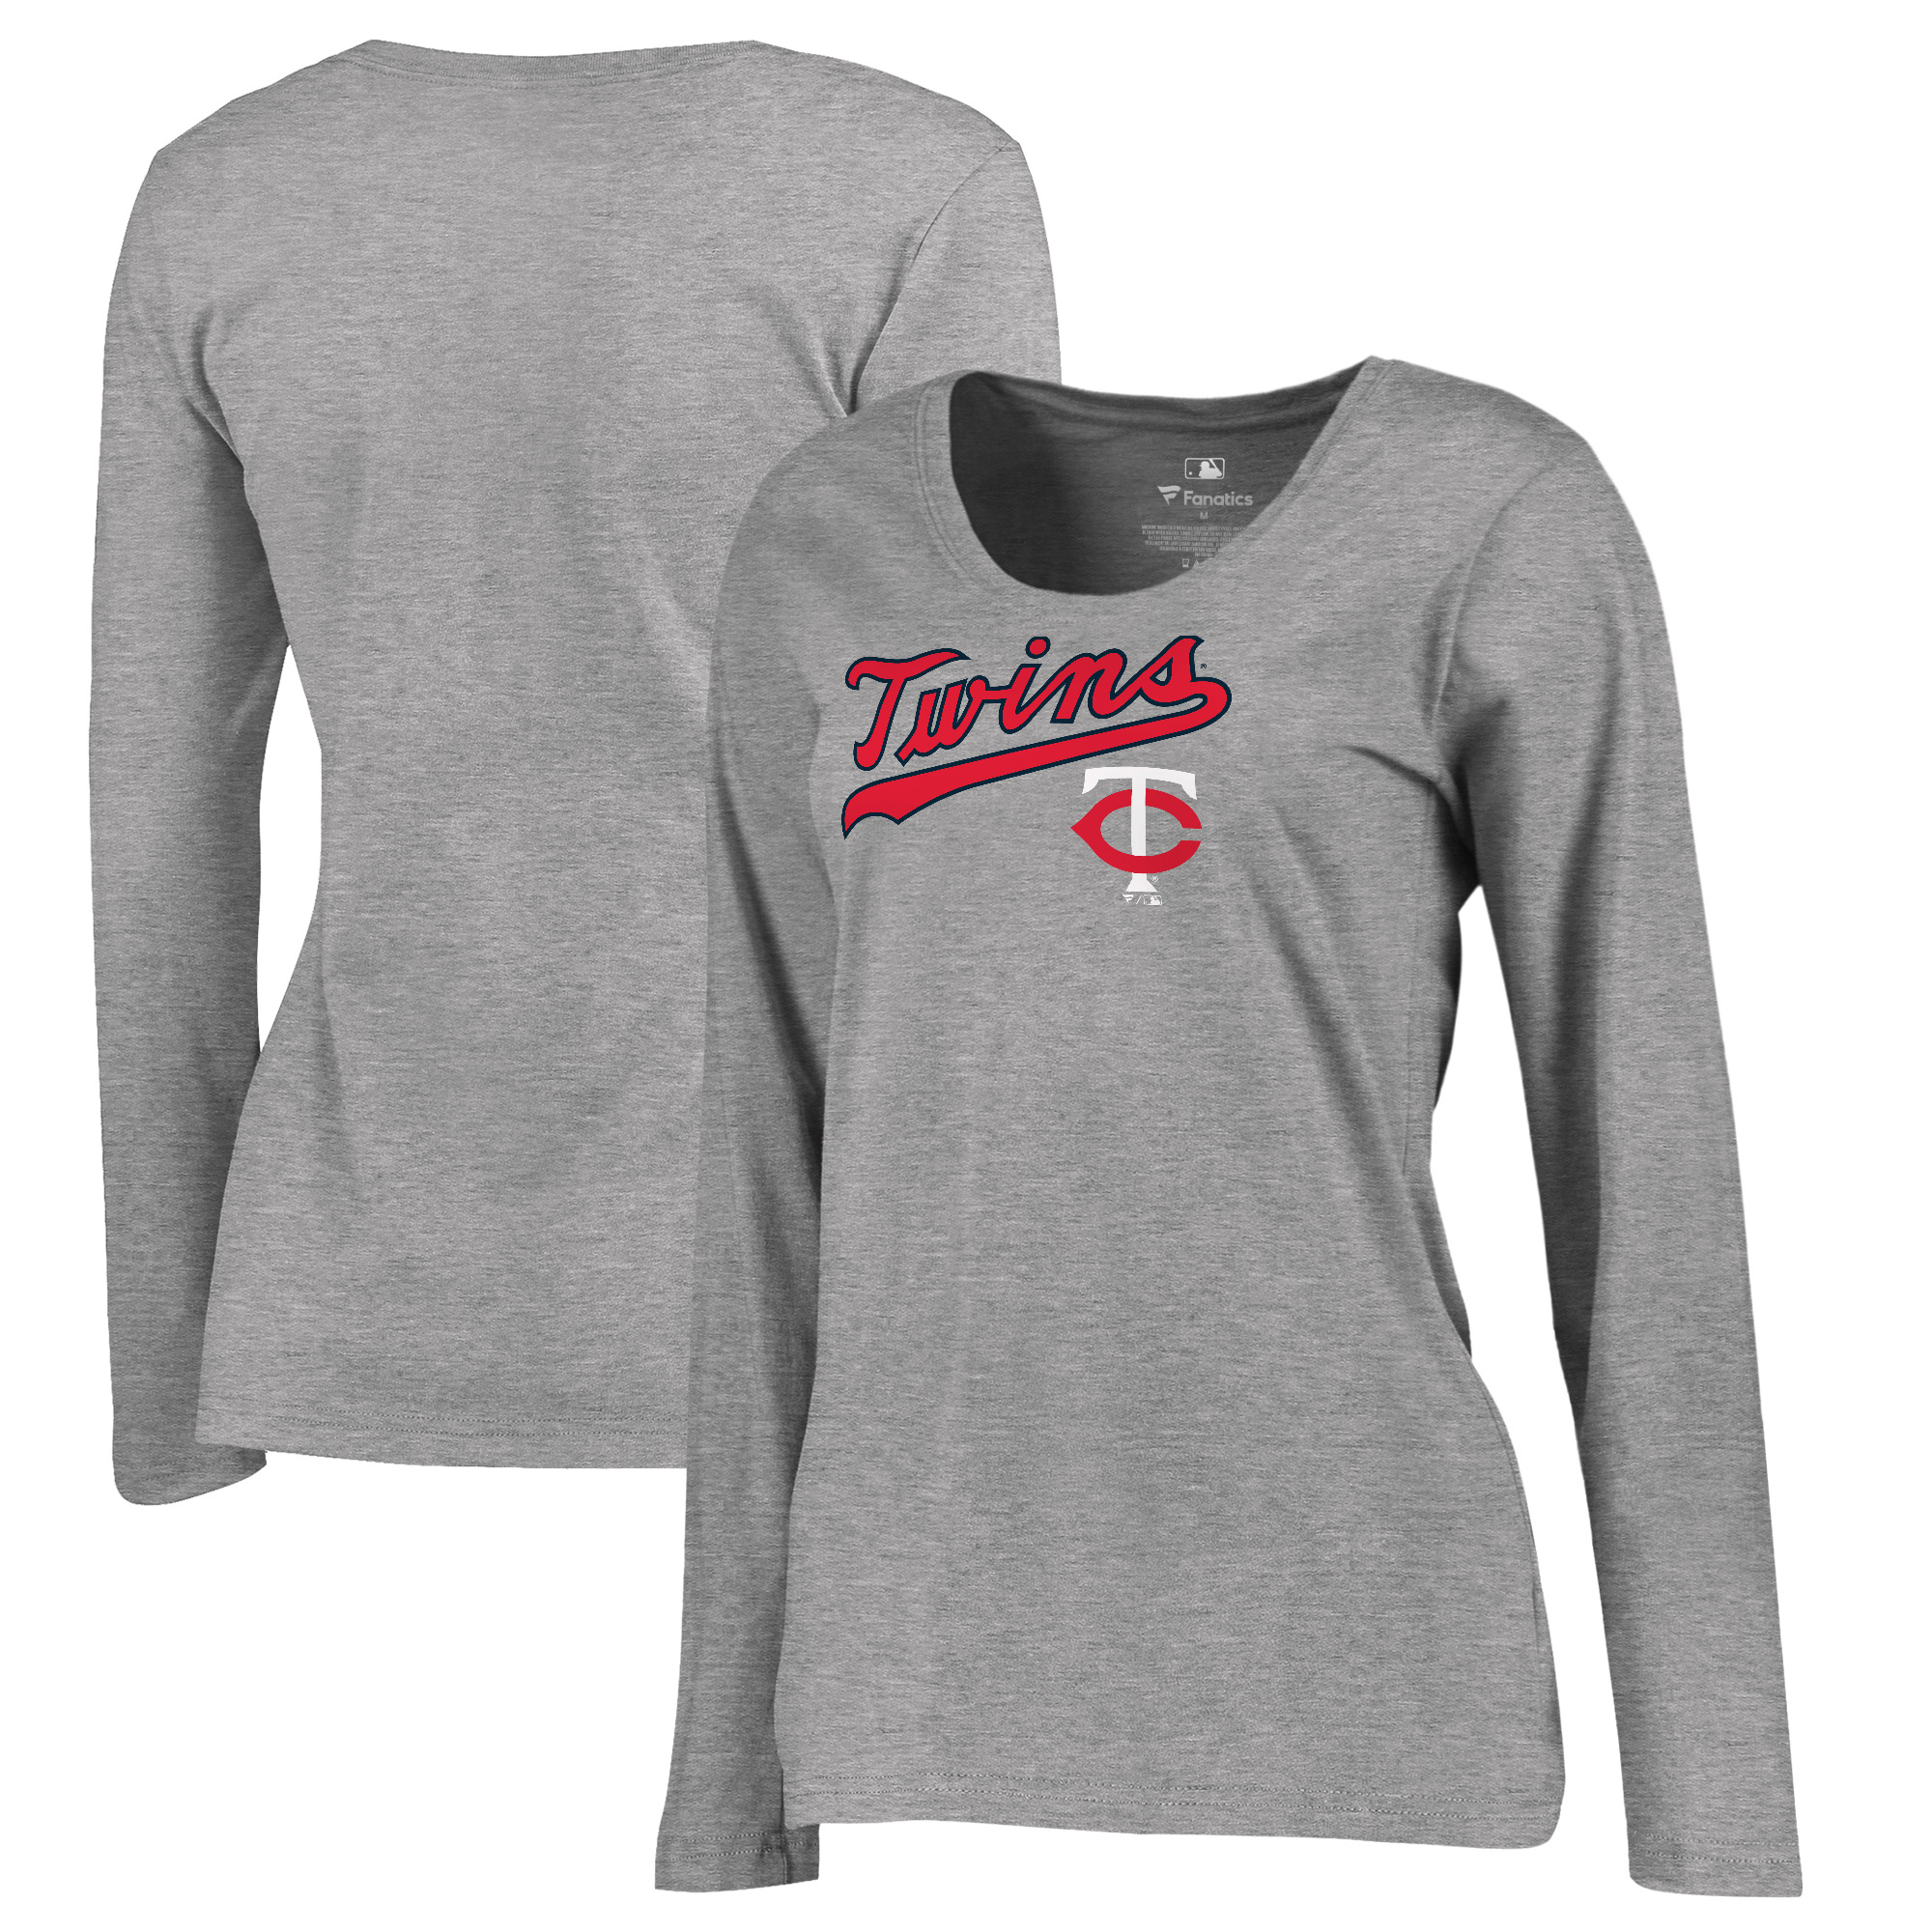 Minnesota Twins Fanatics Branded Women's Plus Size Cooperstown Collection Wahconah Long Sleeve T-Shirt Heathered Gray by Football Fanatics/Ruppshirts